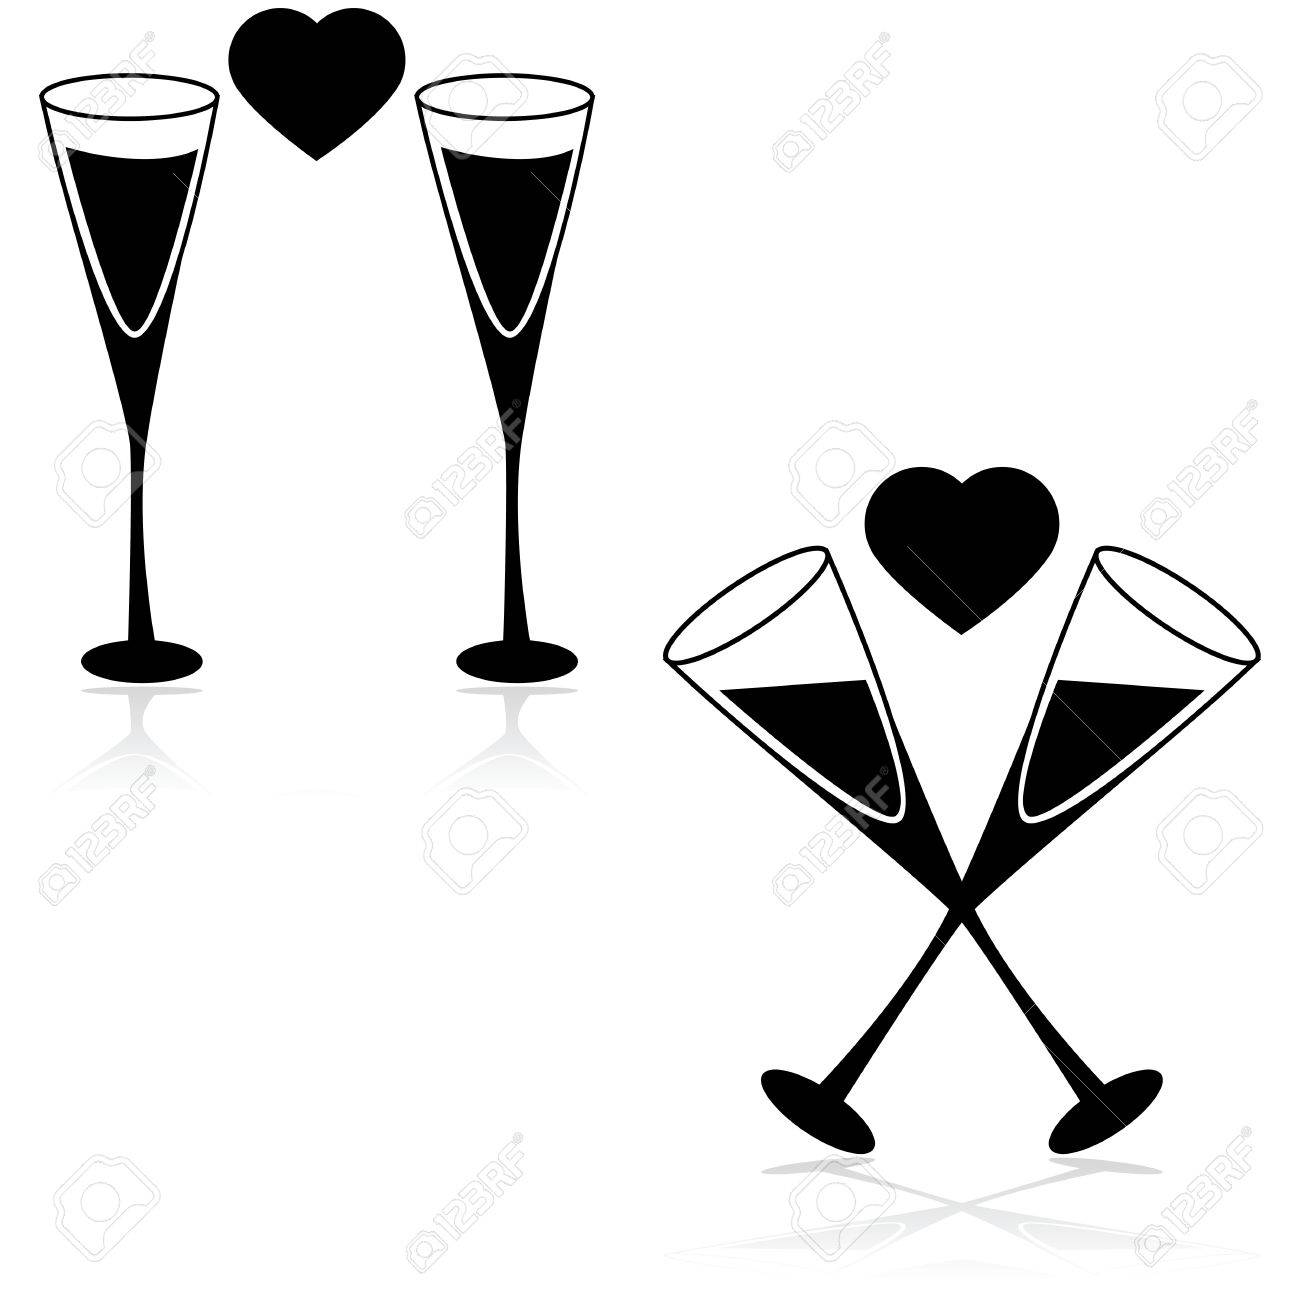 1300x1300 Icon Set Showing Two Champagne Glasses With A Heart In Between